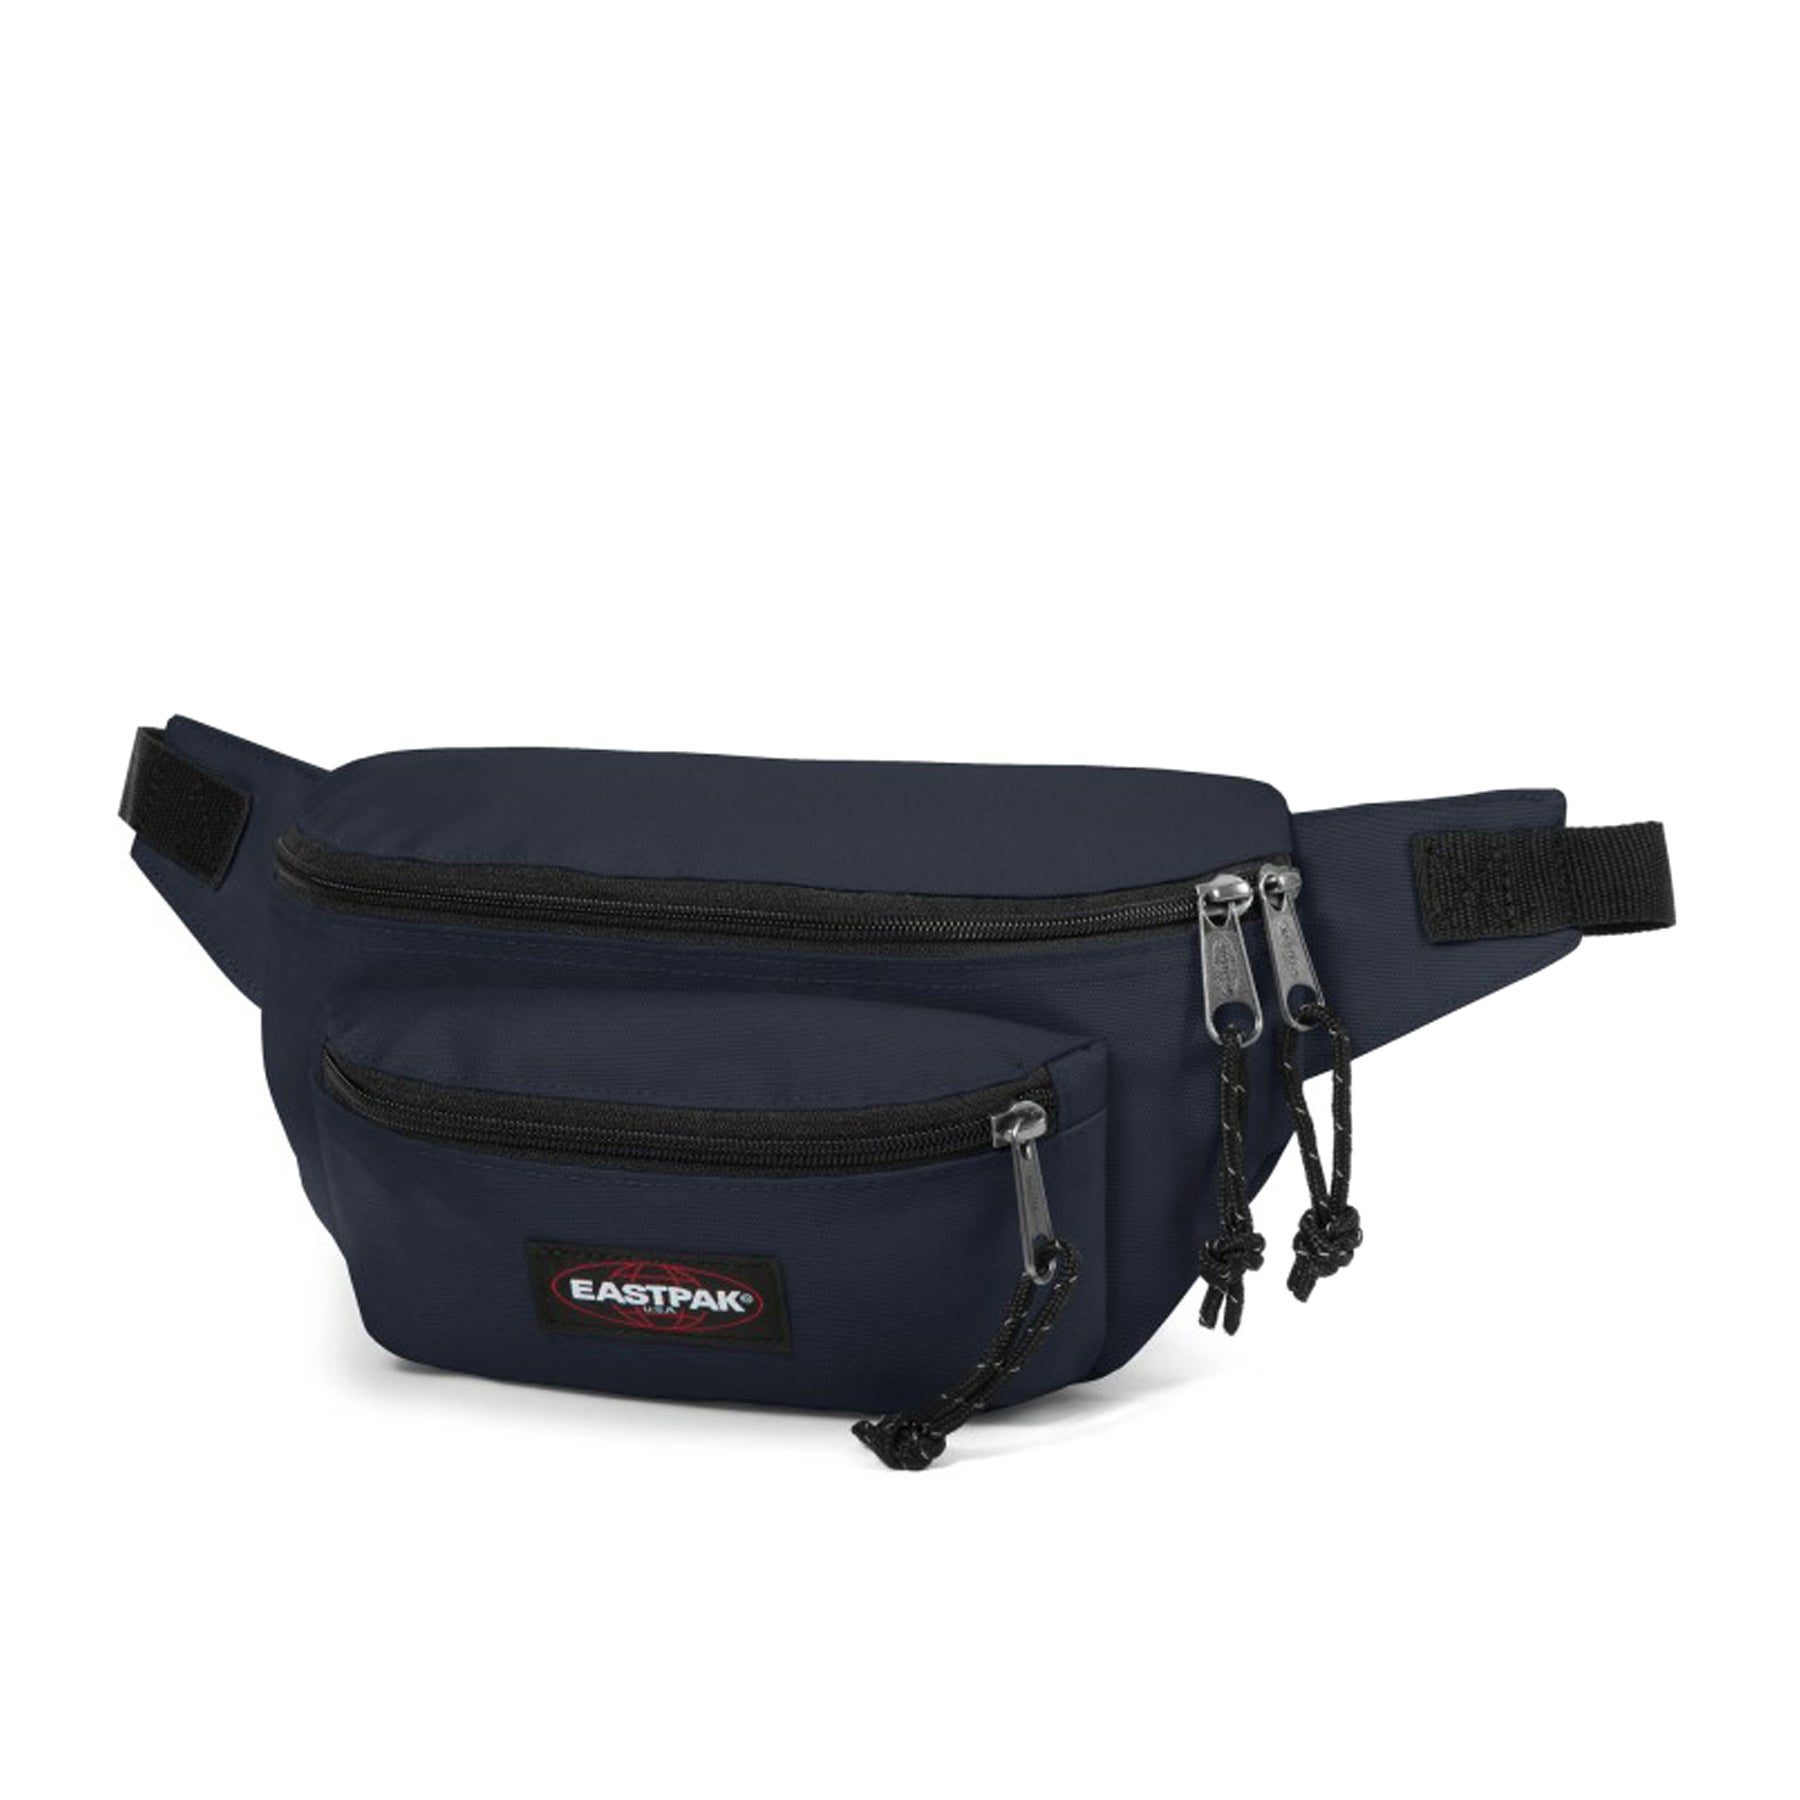 Eastpak Doggy Gürteltasche